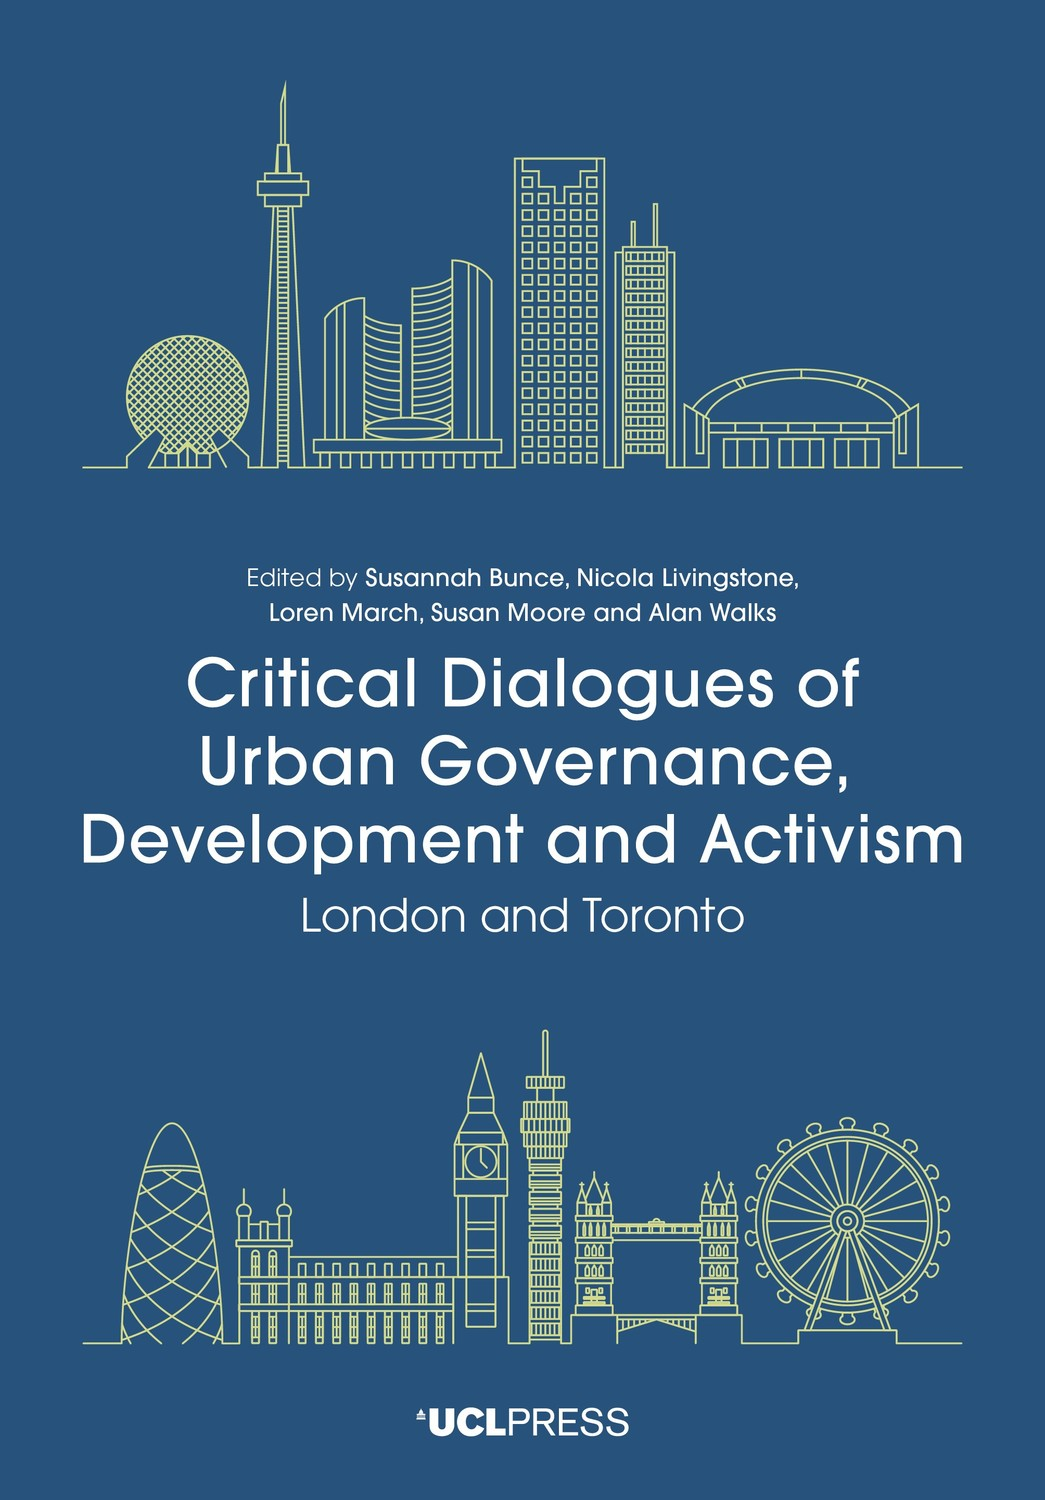 Critical Dialogues of Urban Governance, Development and Activism